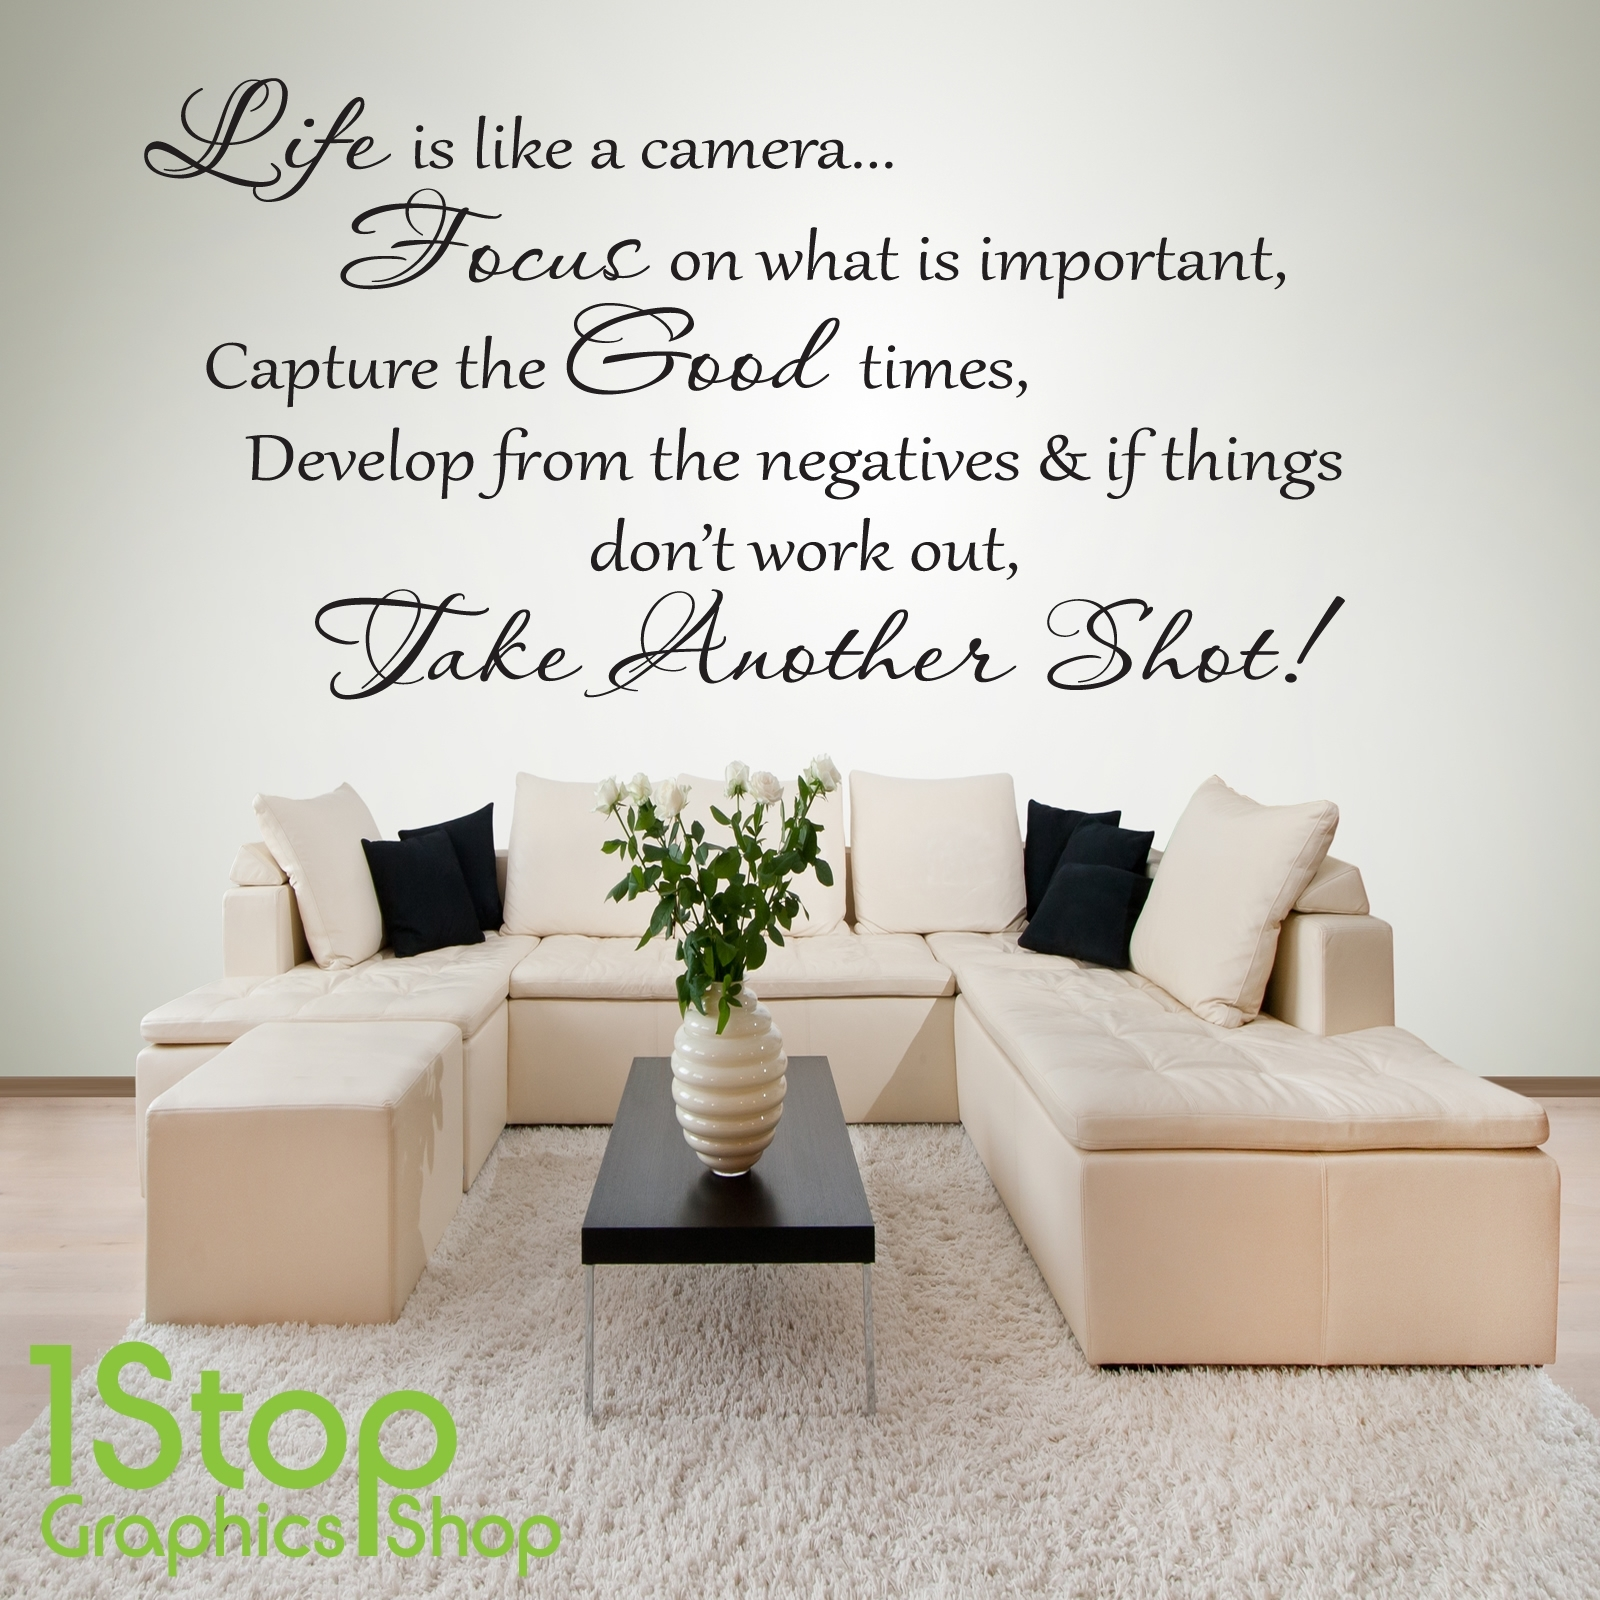 Life Is Like A Camera Wall Sticker Quote – Bedroom Home Wall Art In Most Current Wall Sticker Art (View 8 of 15)